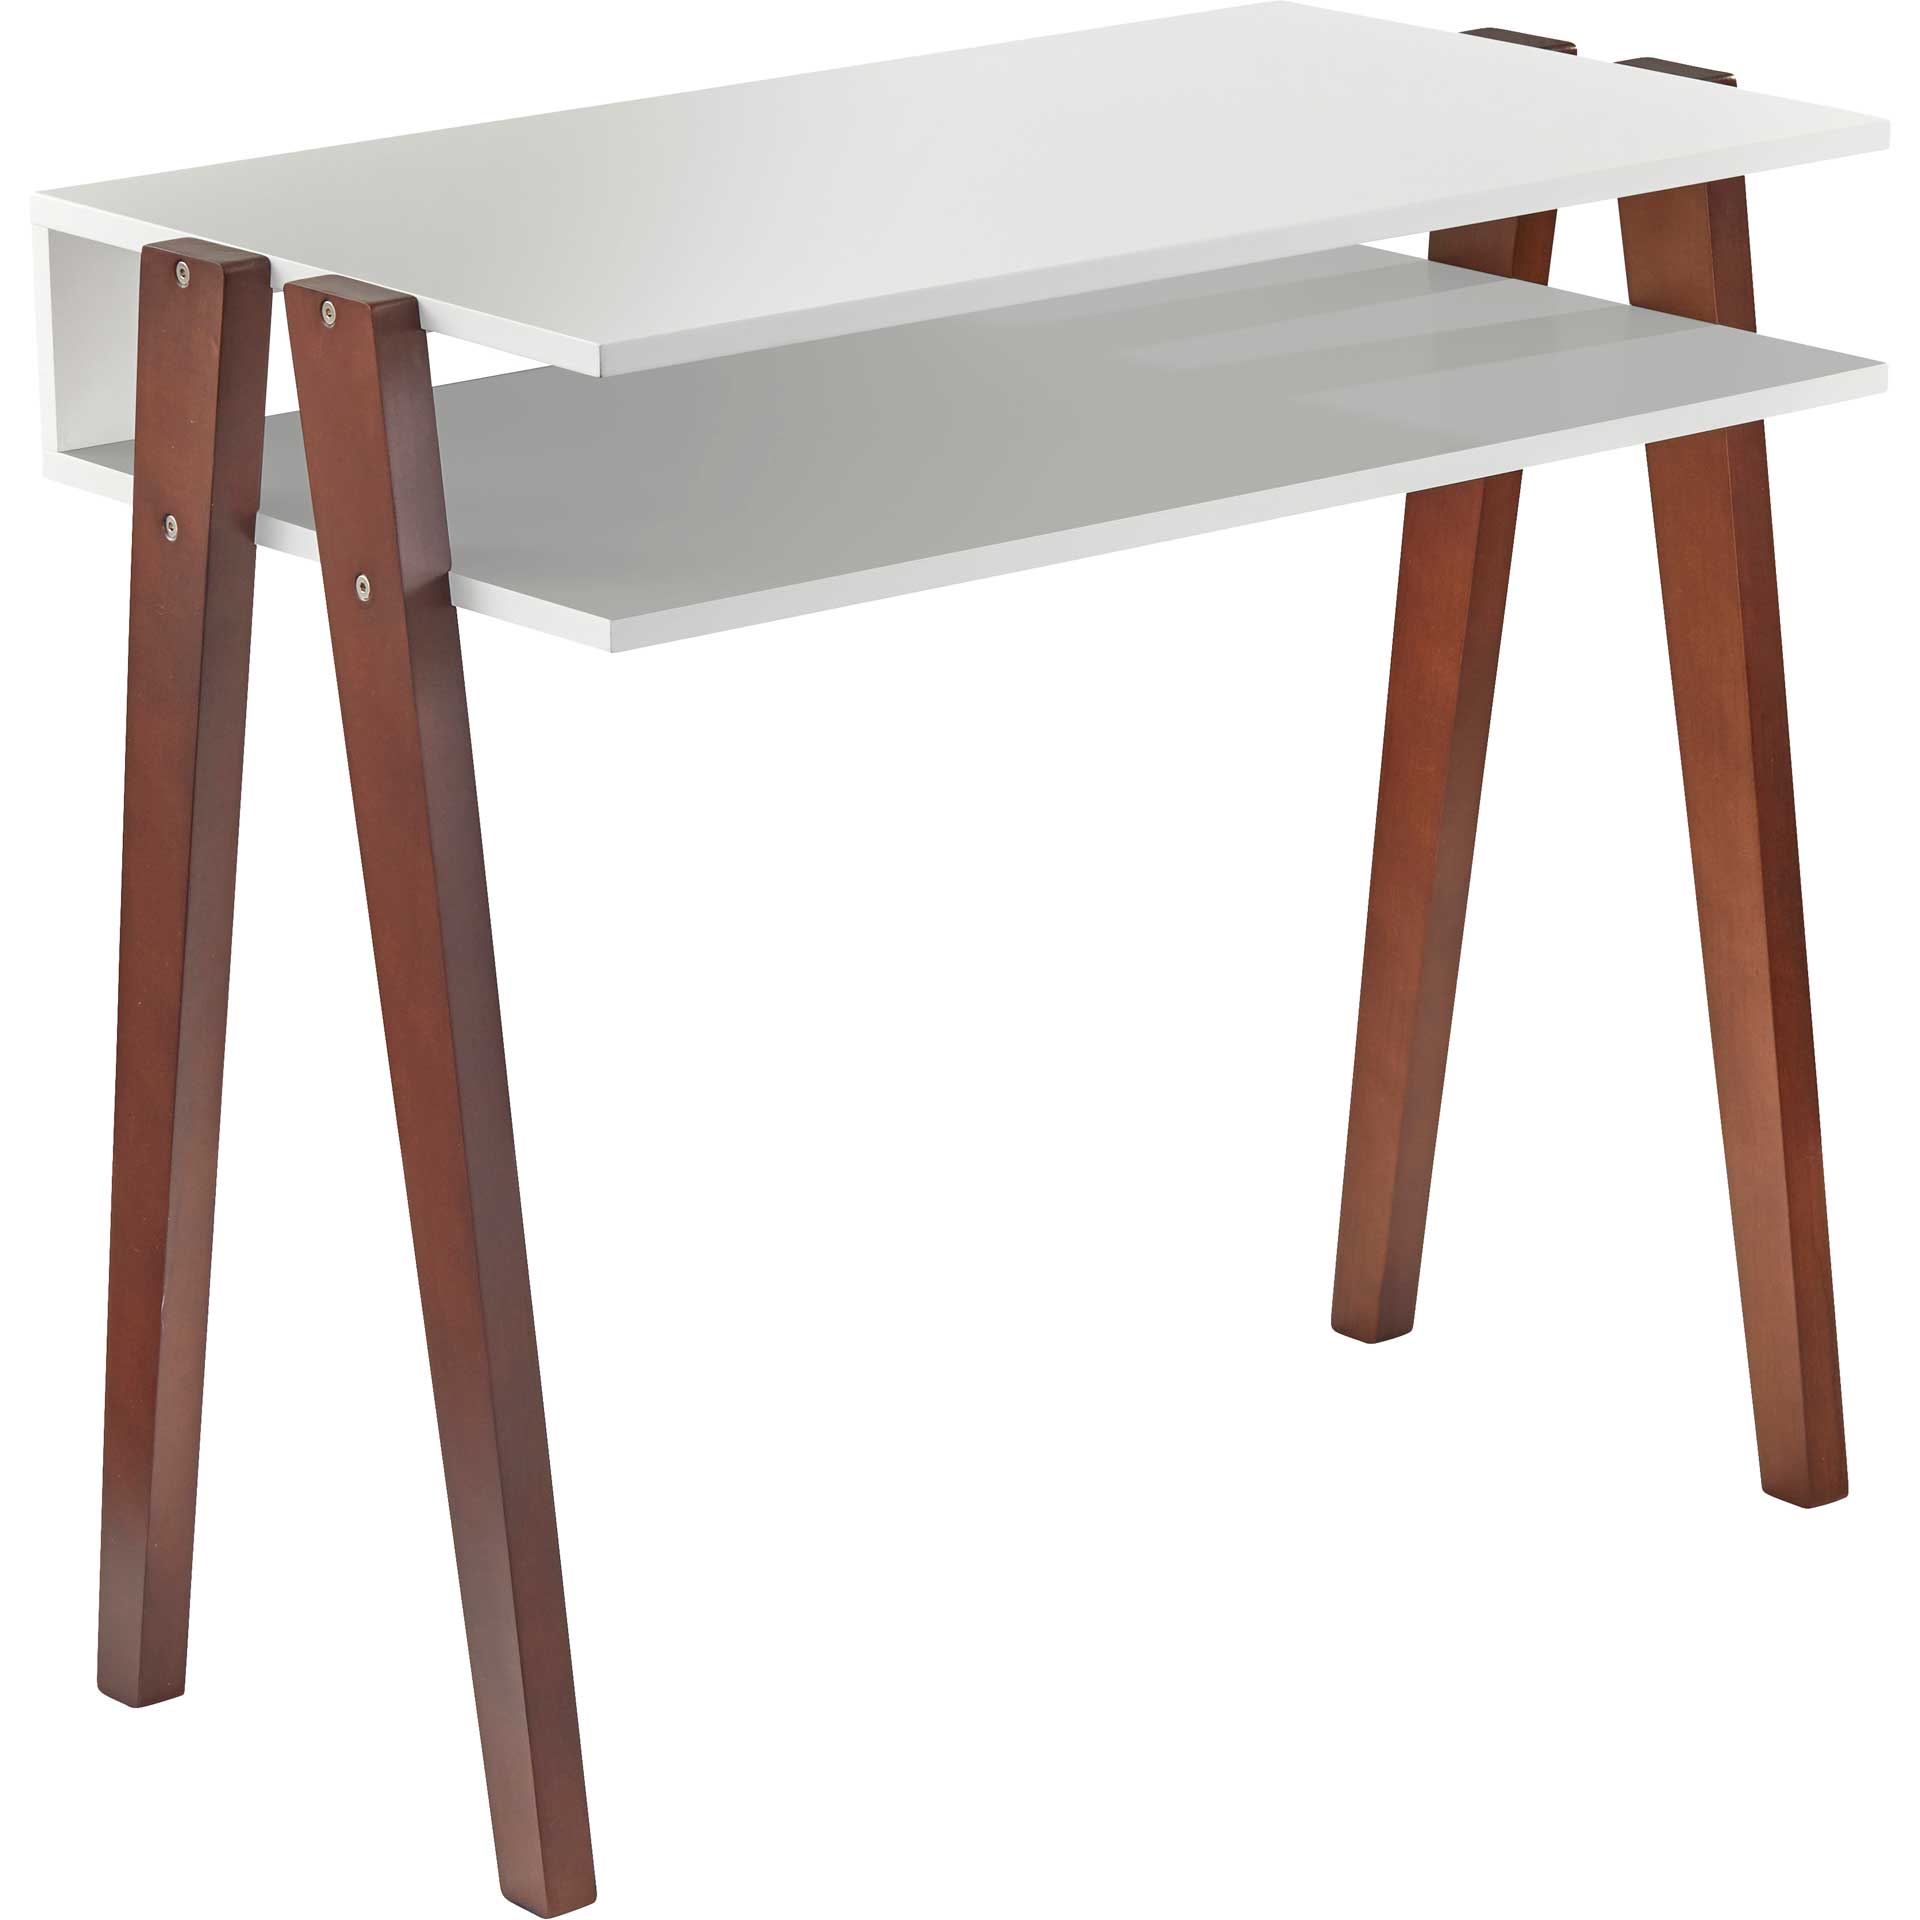 Laon Desk White/Walnut